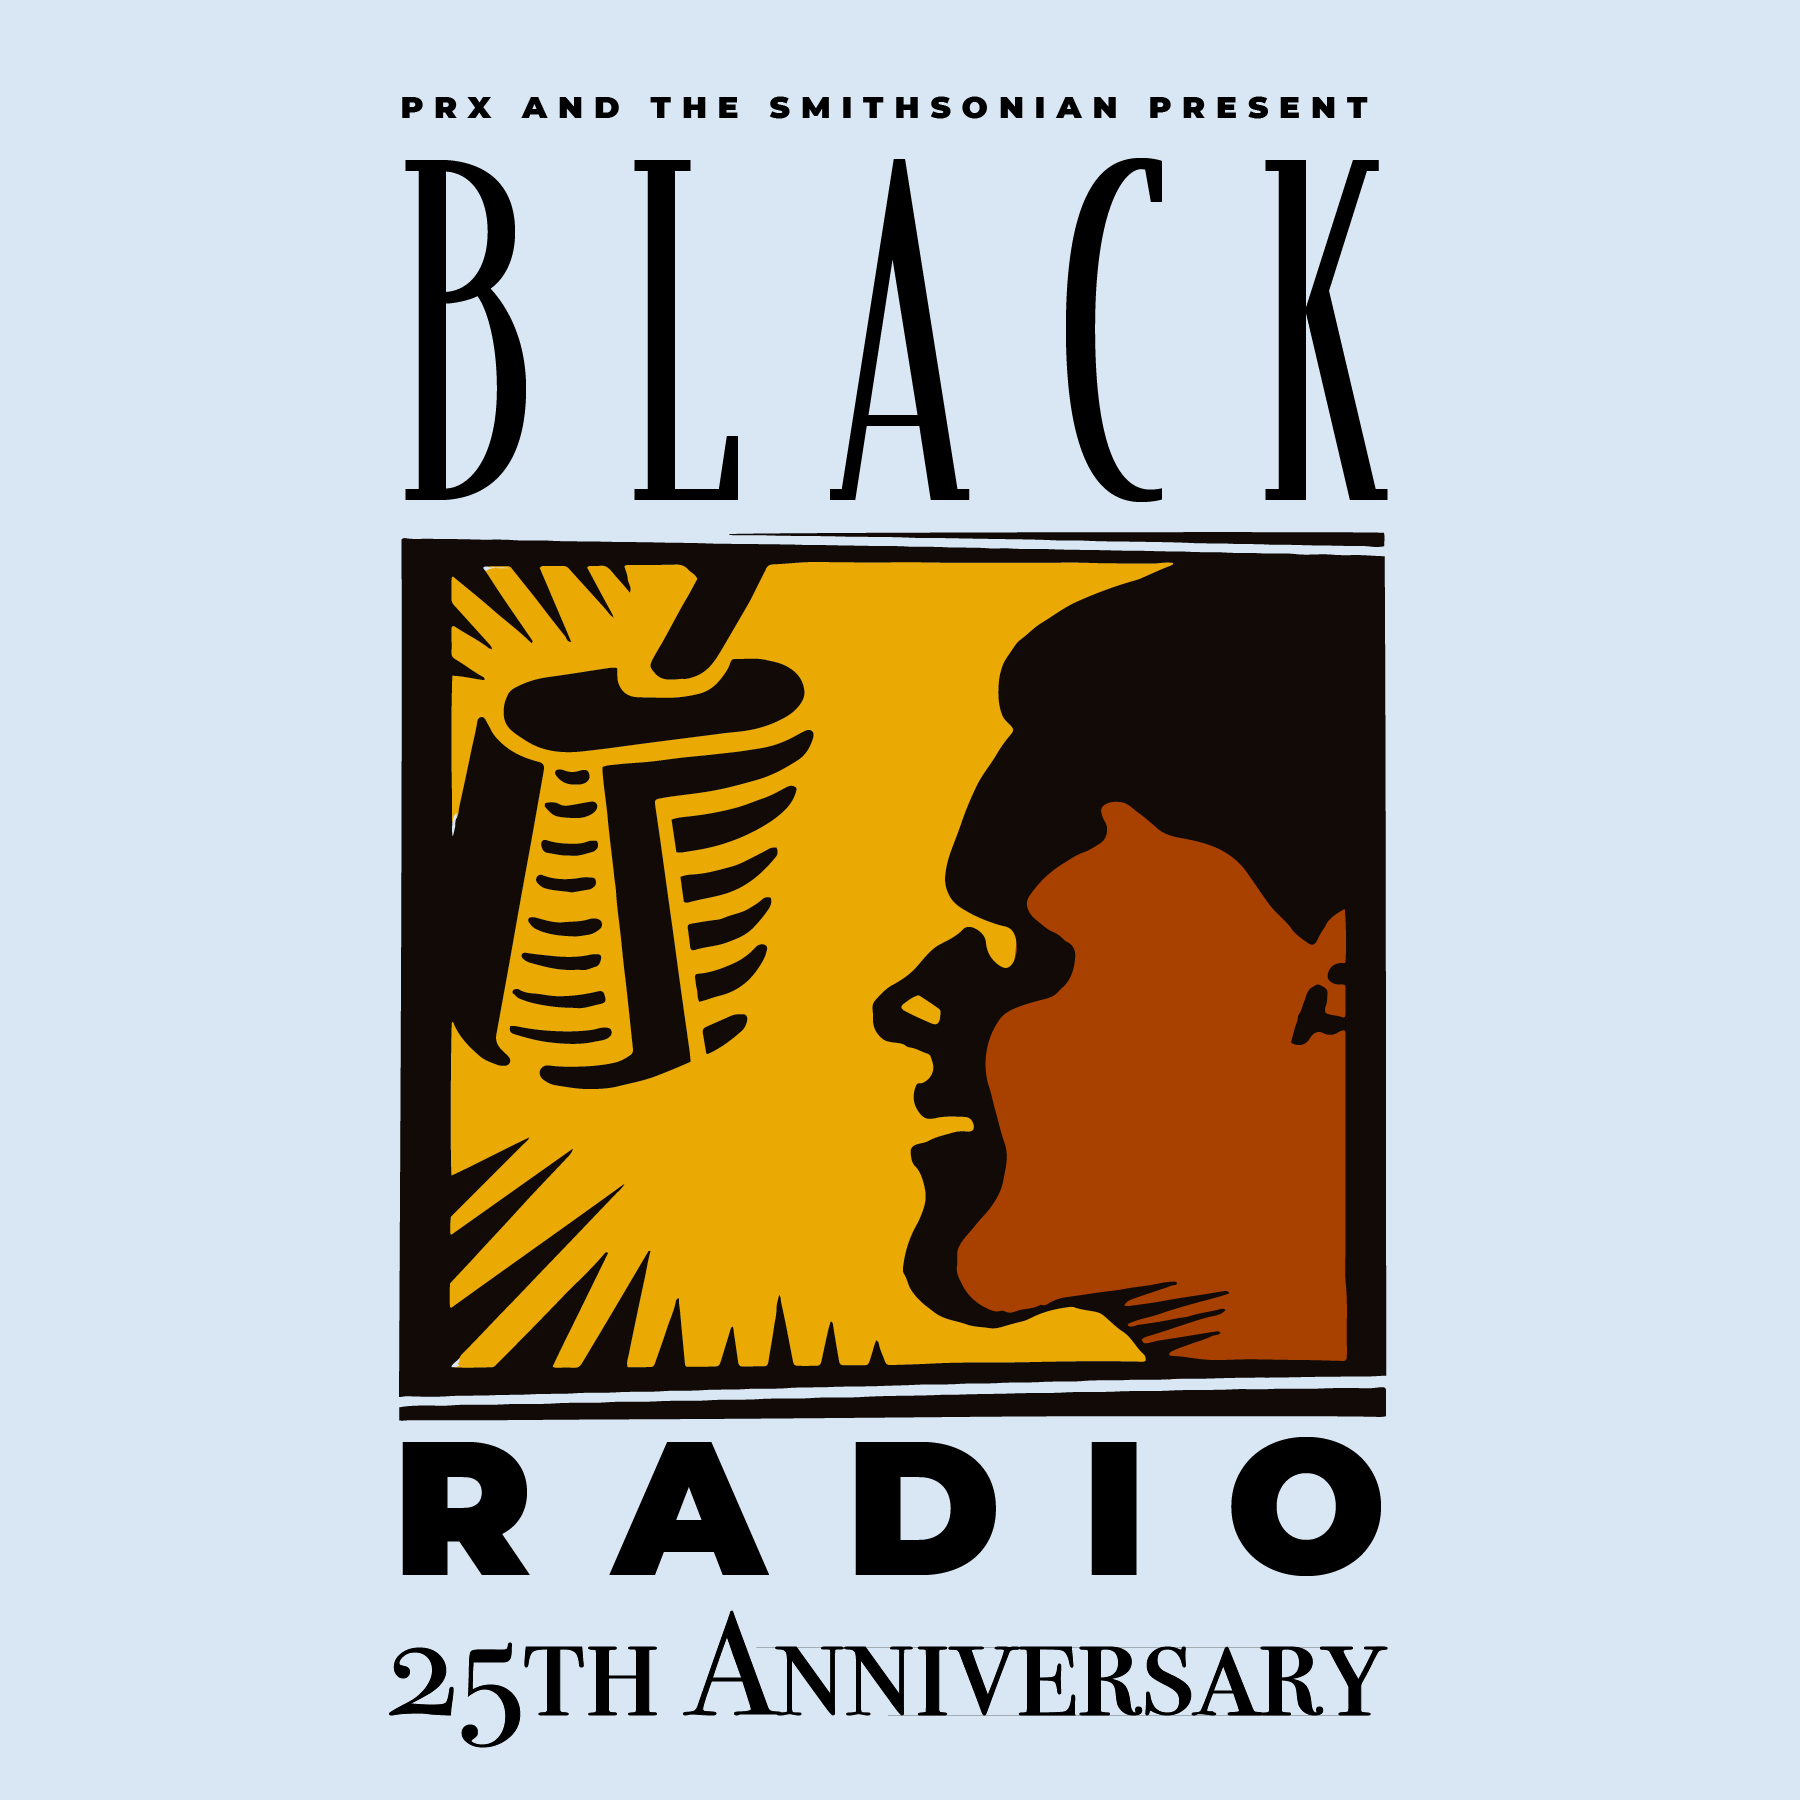 Blackradio_25thann_logo-03_small